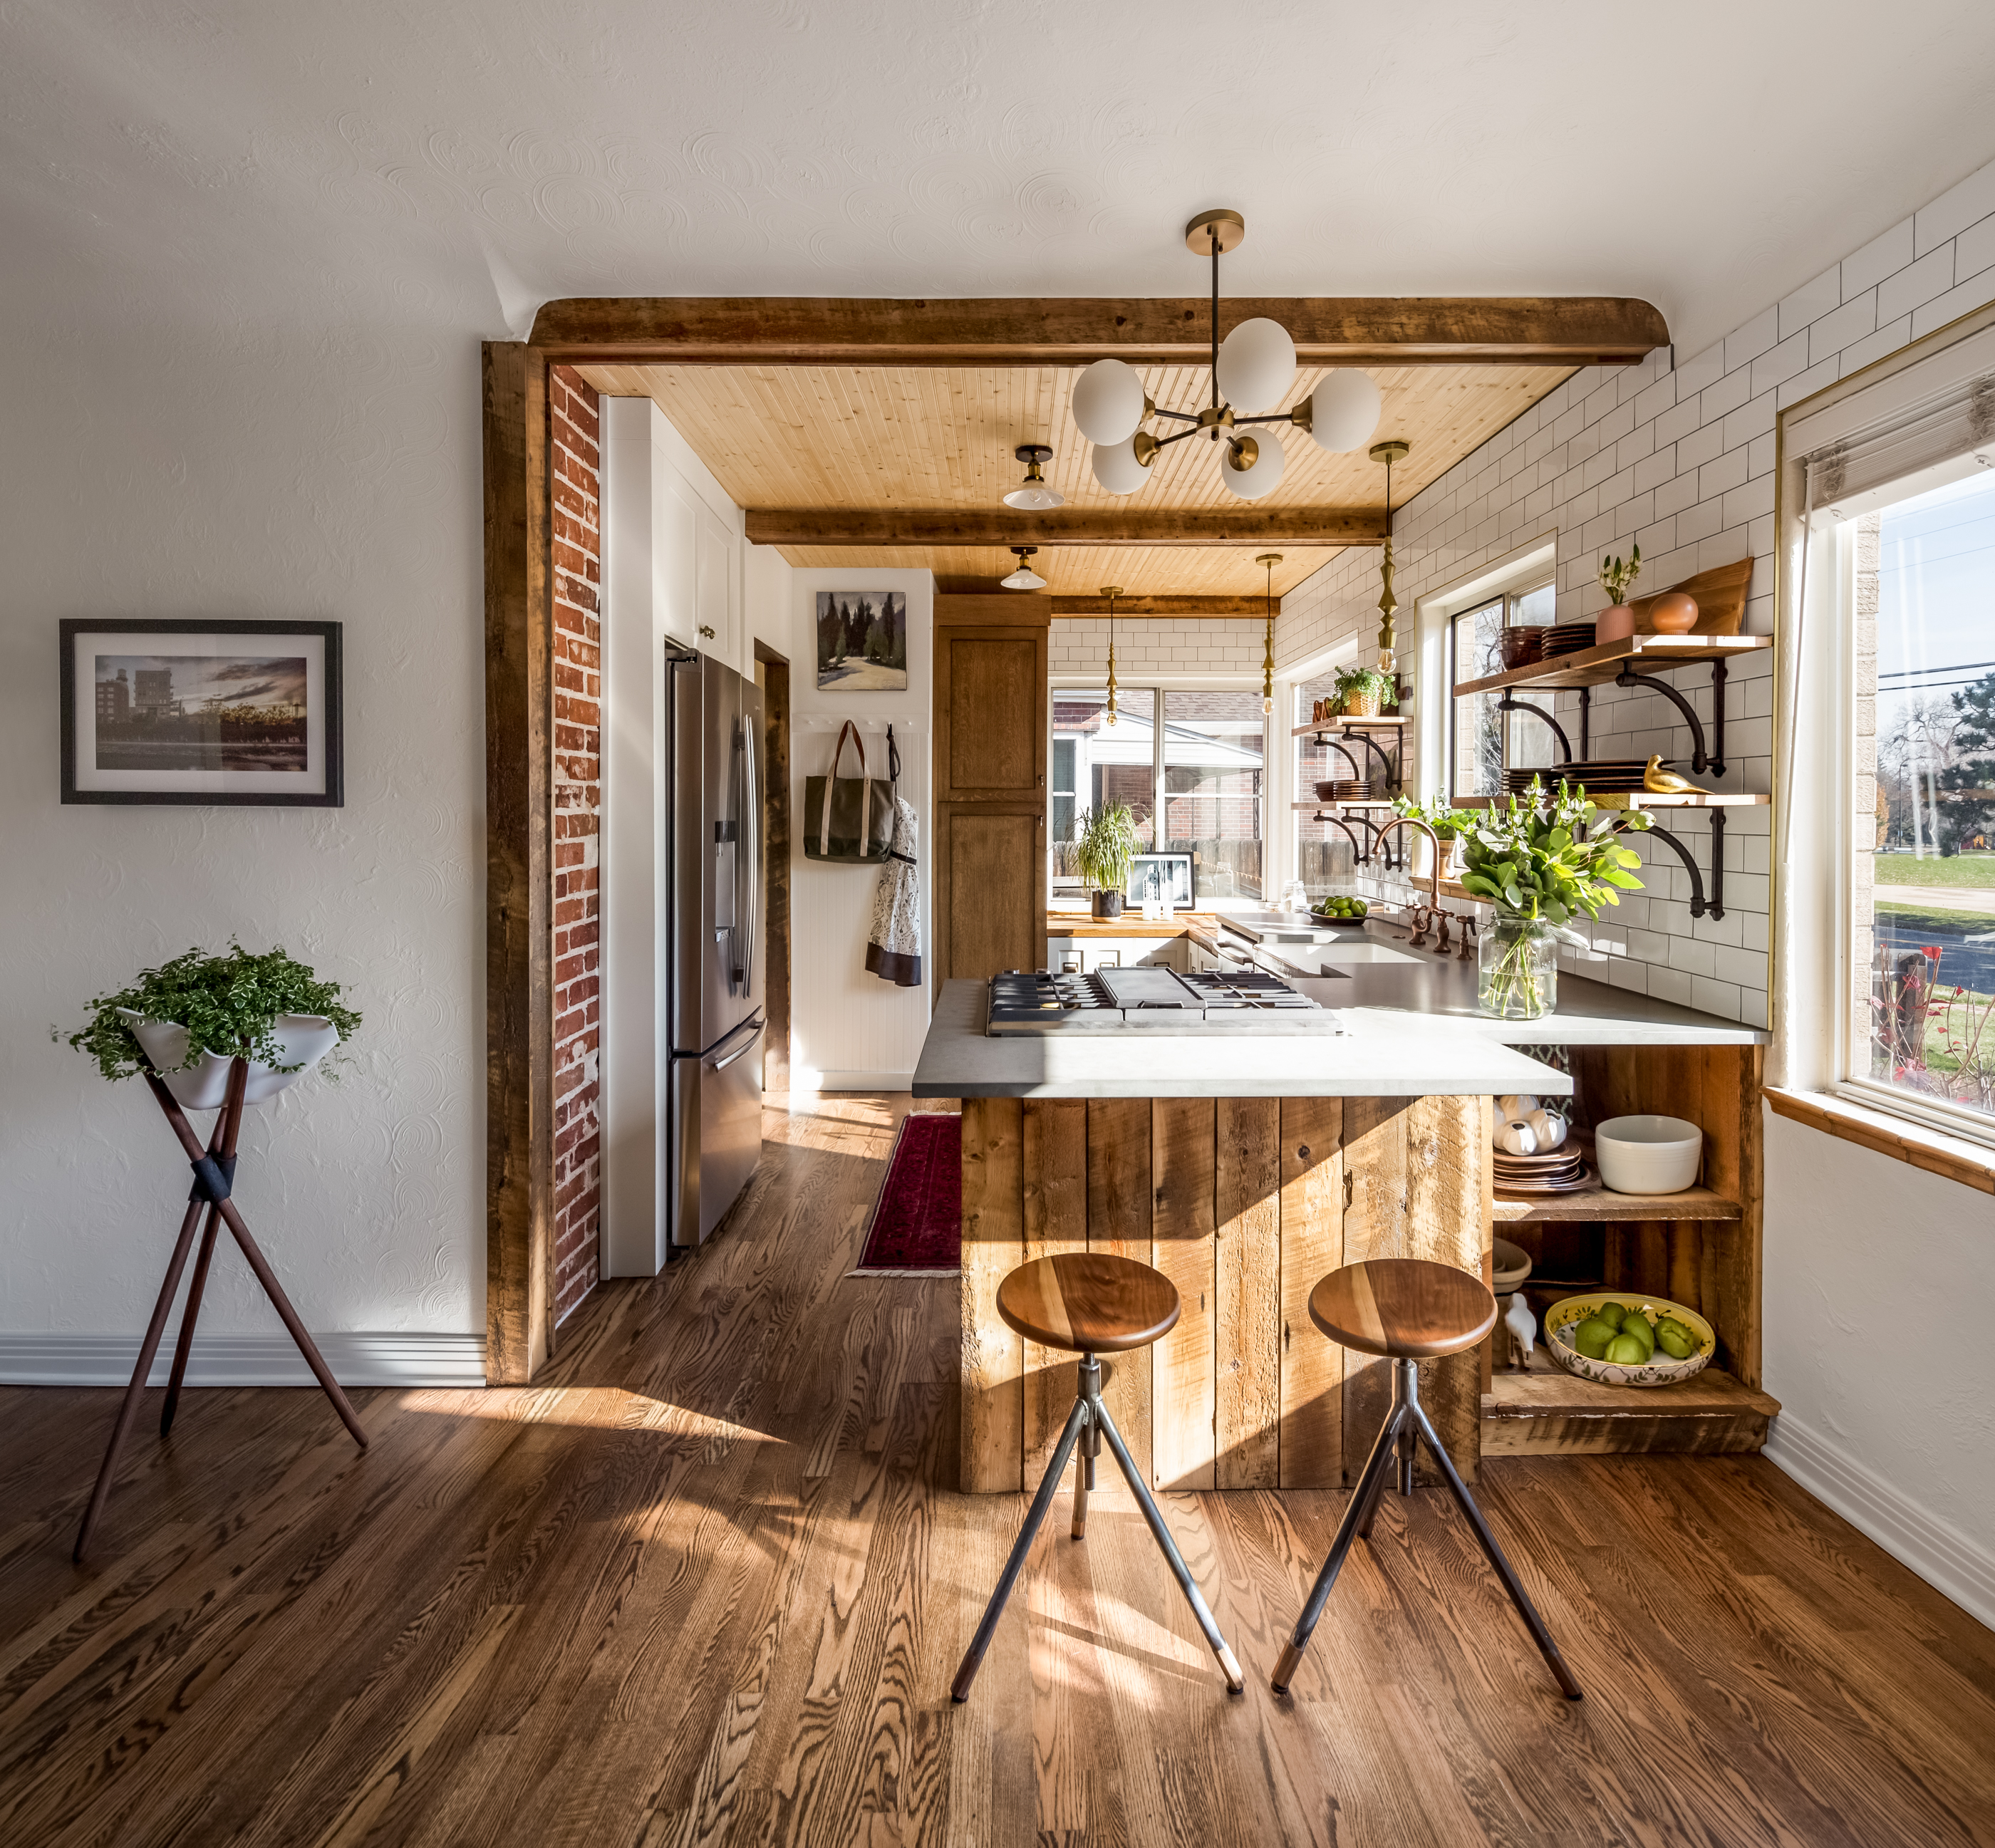 Rustic Farmhouse Kitchen Design Products Furniture And Art